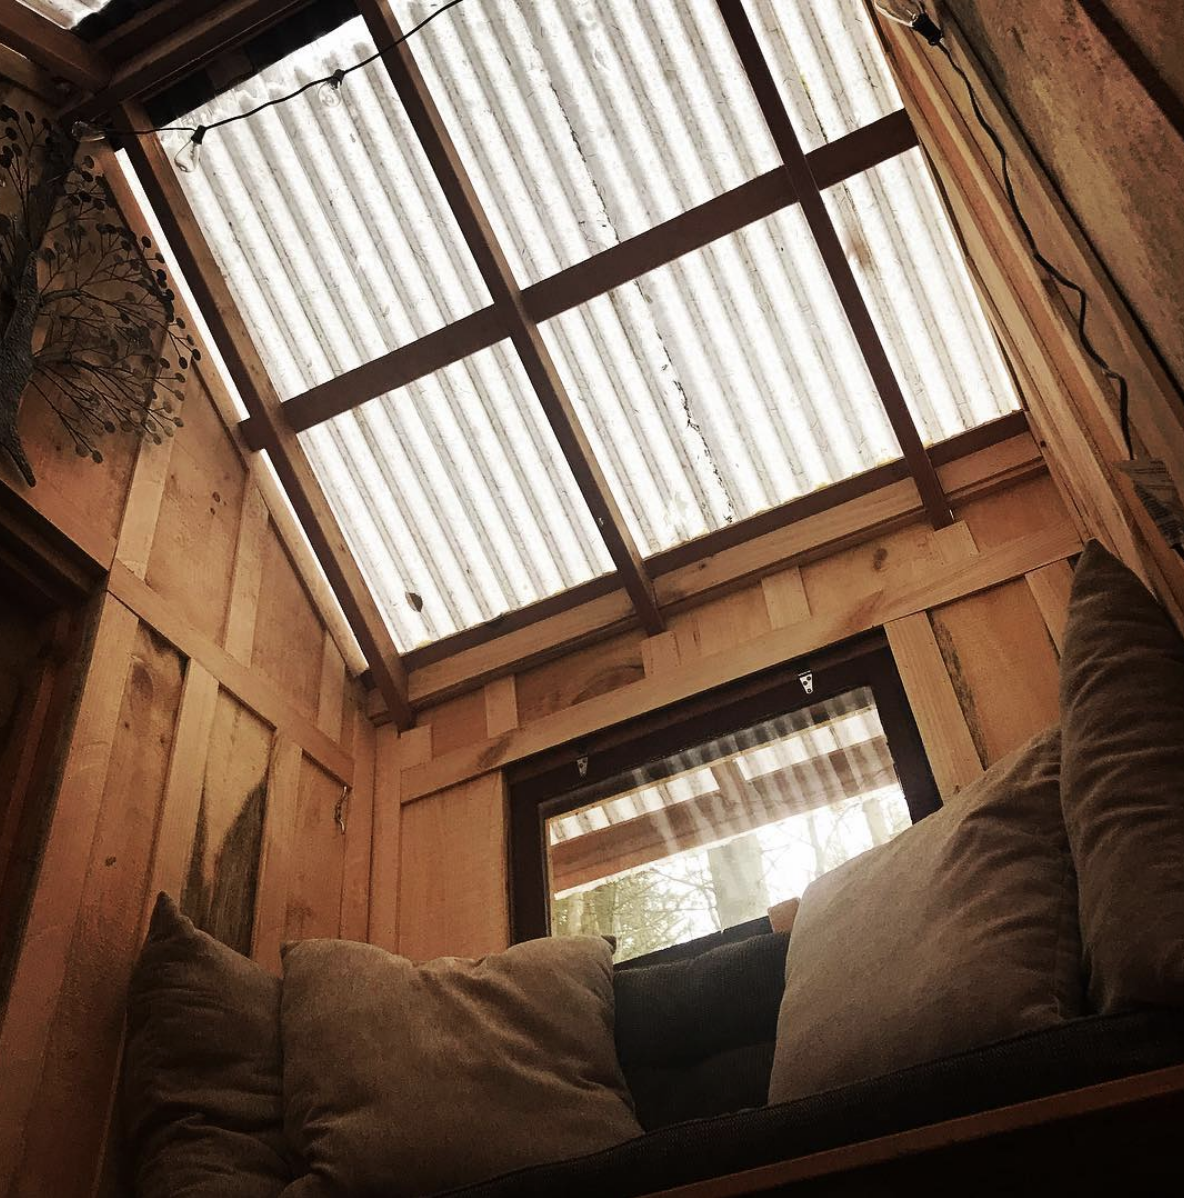 The view in the second story of Goodall's treehouse cabin here at #Wellnesste. The transparent roof is covered in snow and you can hear the creaking of the hemlocks and pines as the wind moves the treetops back and forth. Sitting here in quiet contemplation on the reading nook with a copy of #adirondacklifemagazine , a blanket and a hot cup of Earl Grey tea, we can think of nowhere else on Earth we'd rather be.  #treehousemasters #treehousetour #treehouseresort #treehouses #treehouselife #cabin